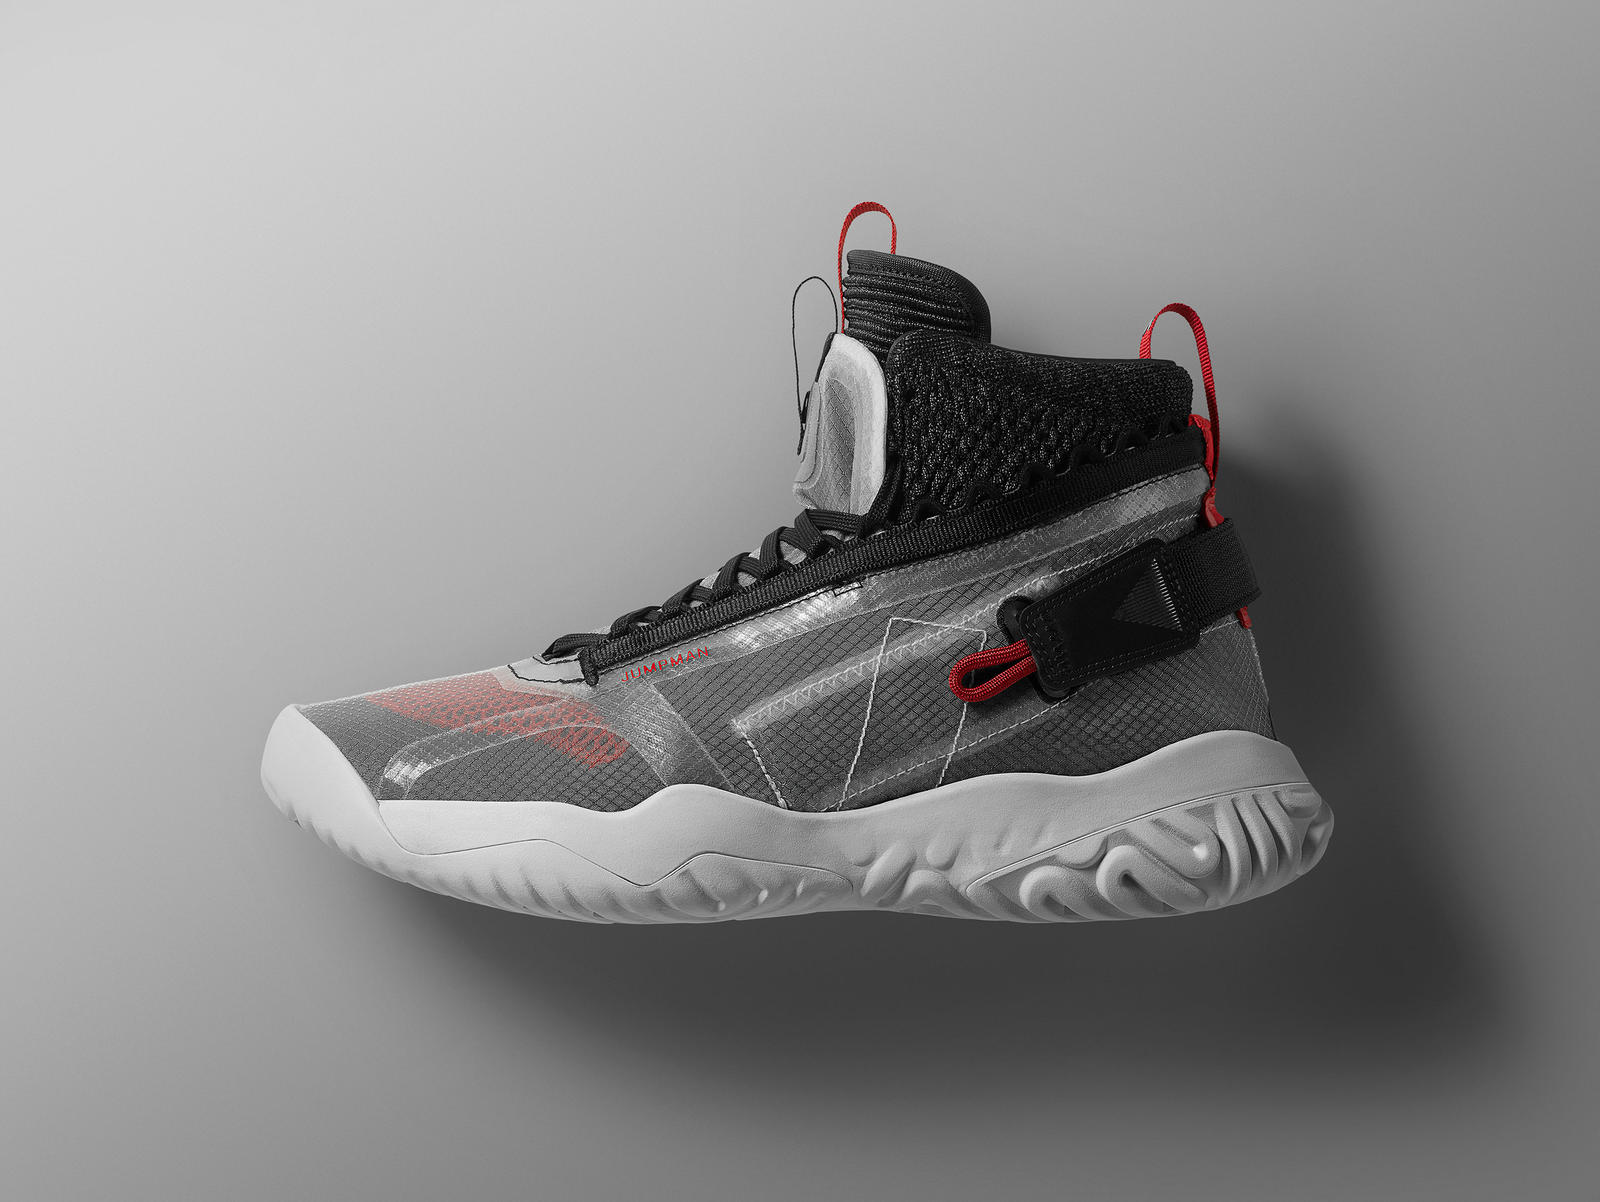 check out 1a42c 9d437 Jordan Apex Utility 1